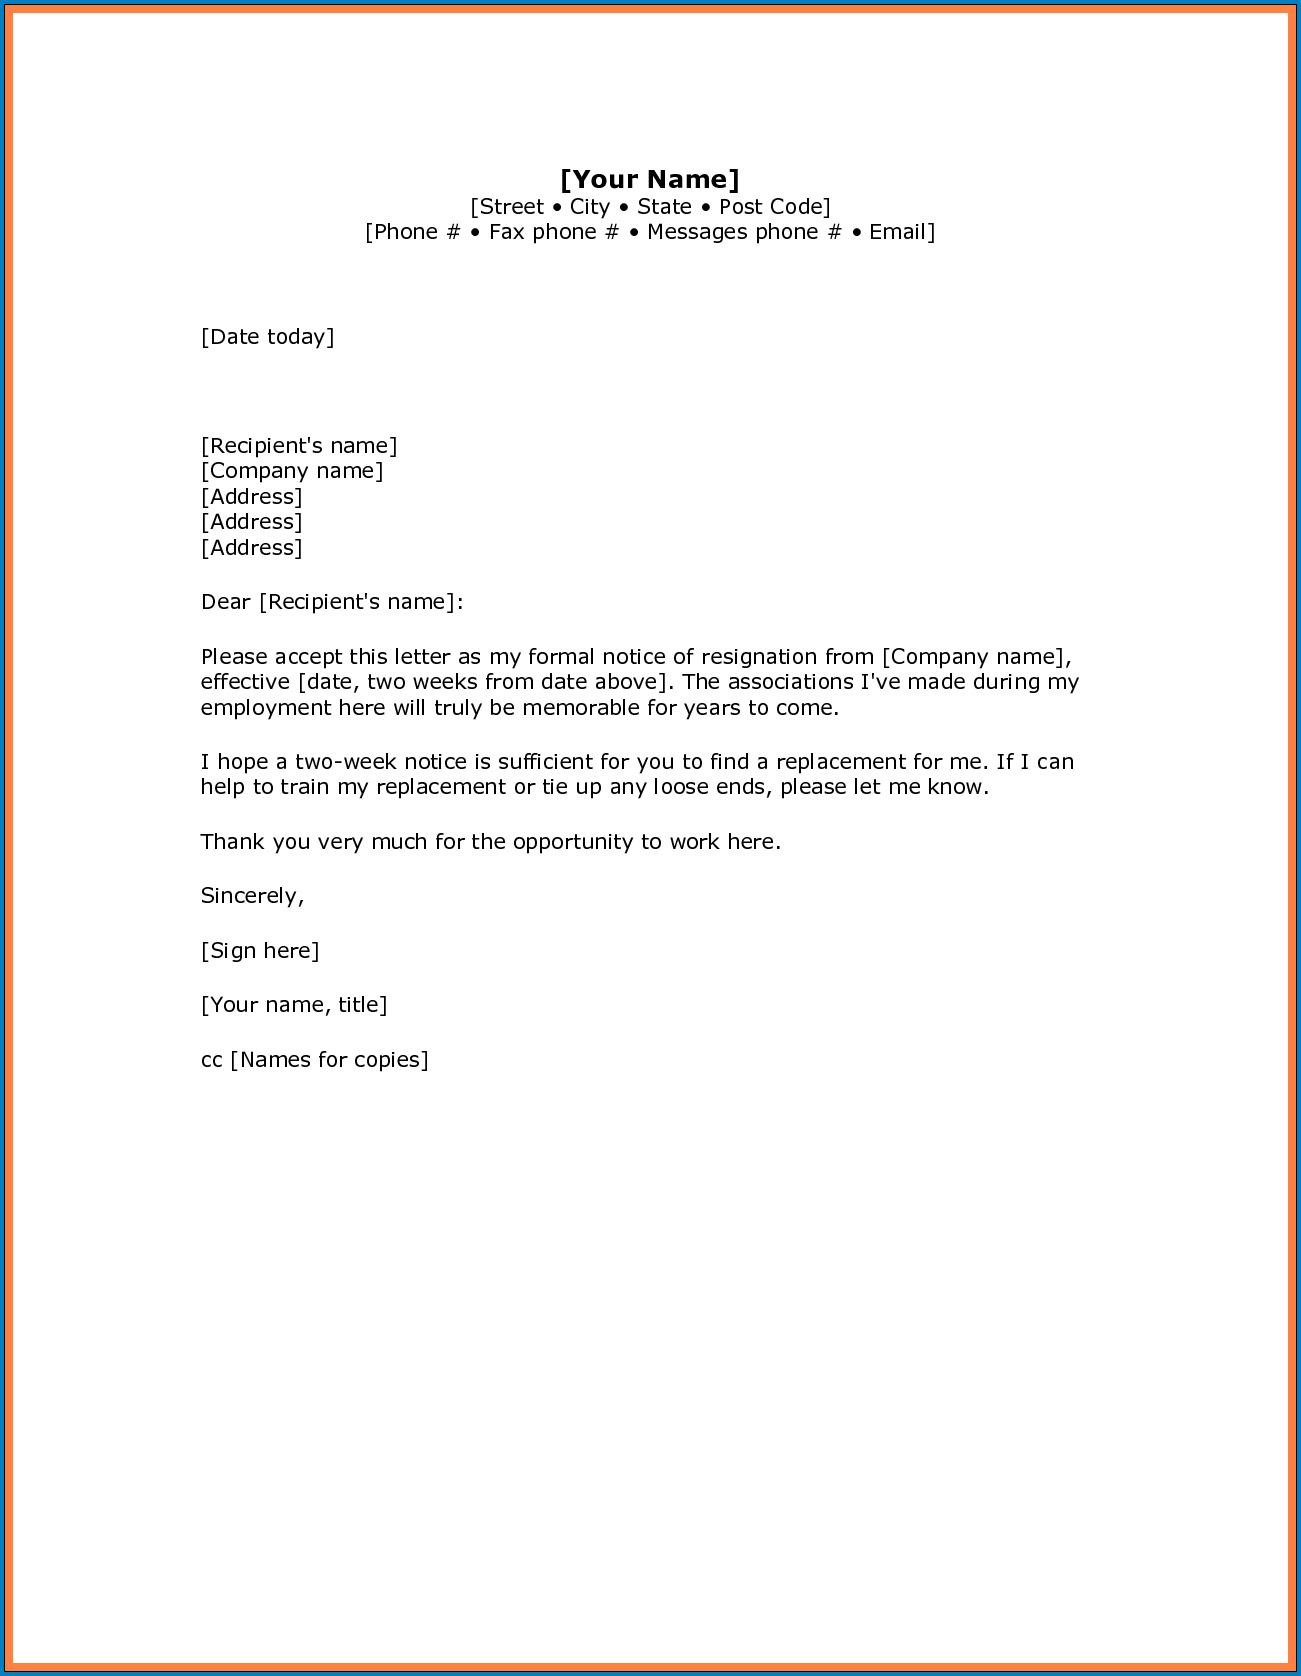 Example of Resignation Letter With Notice